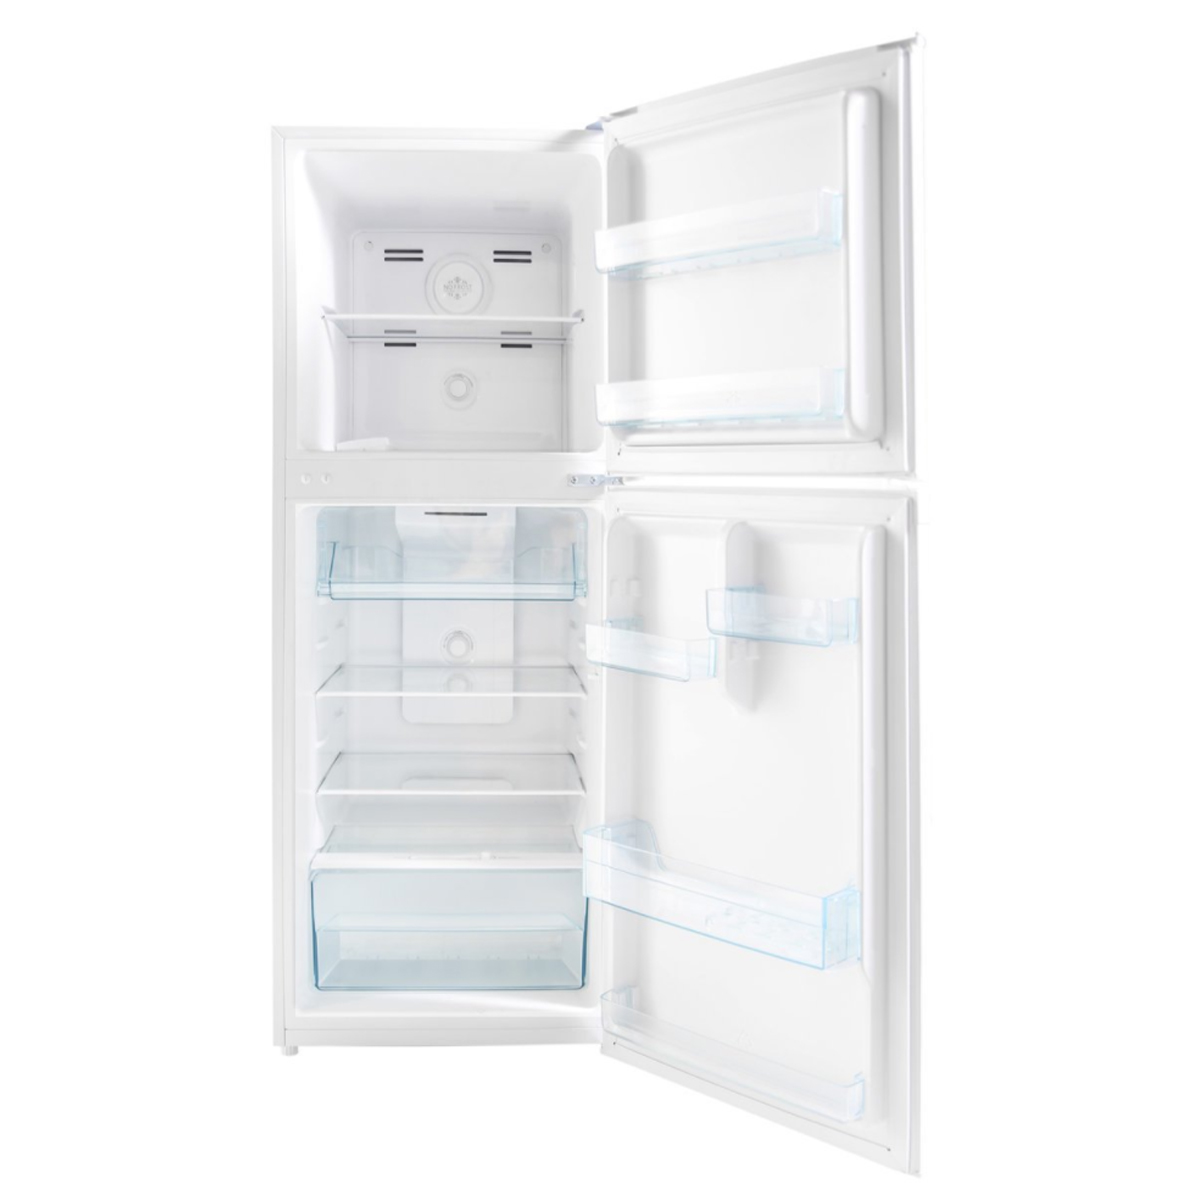 Lemair LTM221W 221Litres Top Mount Fridge 104741